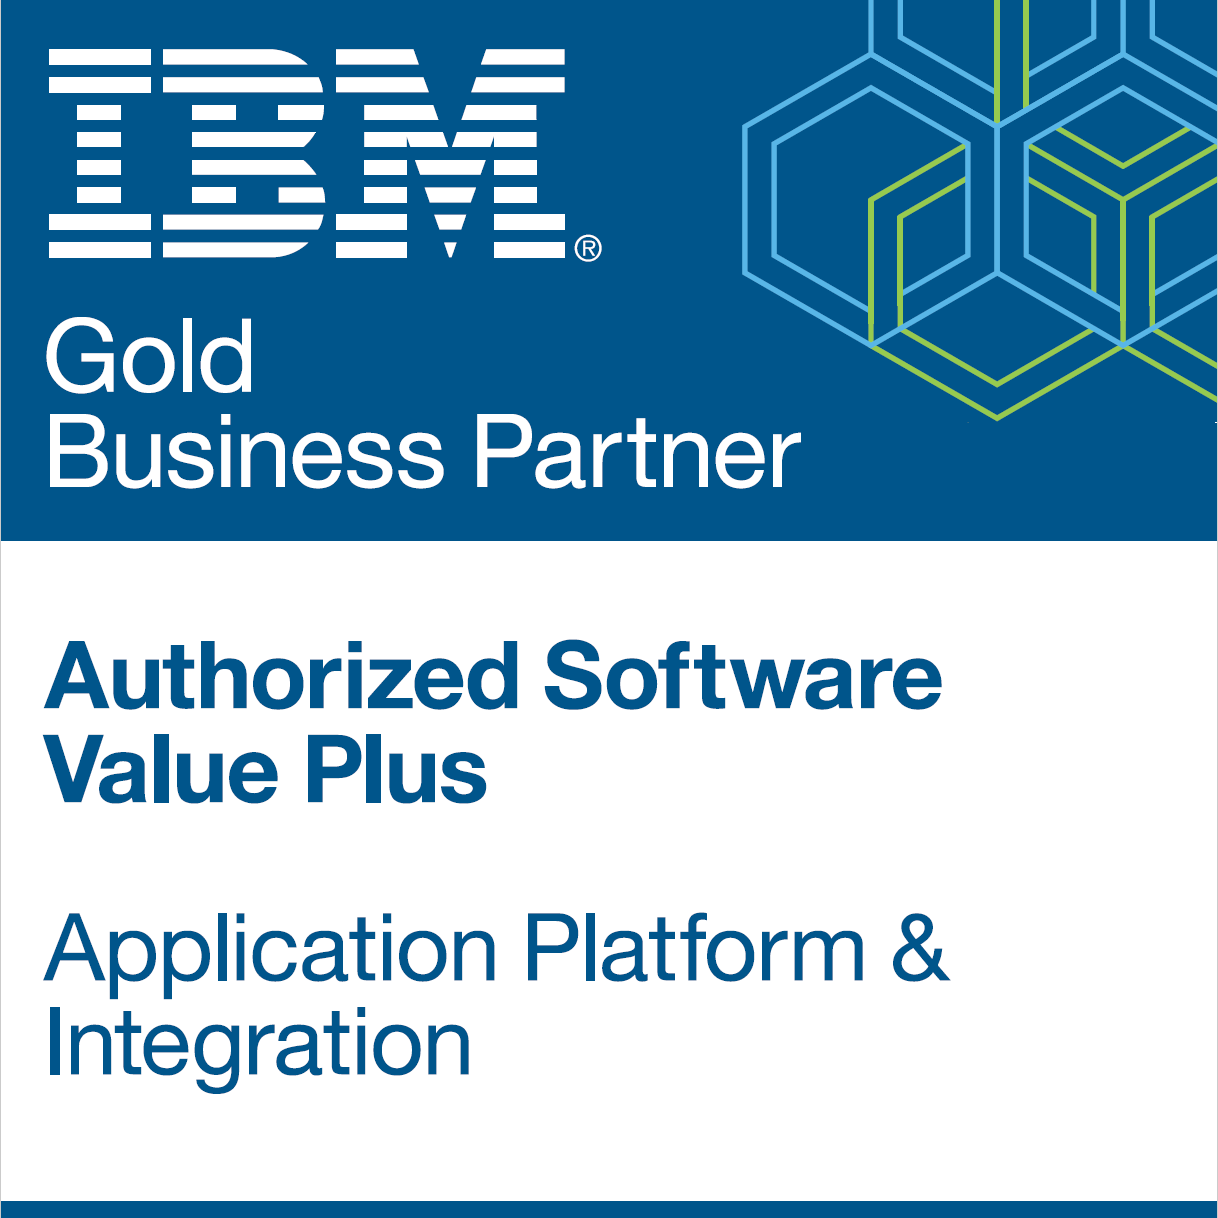 ABS is an IBM Premier Business Partner and software reseller...